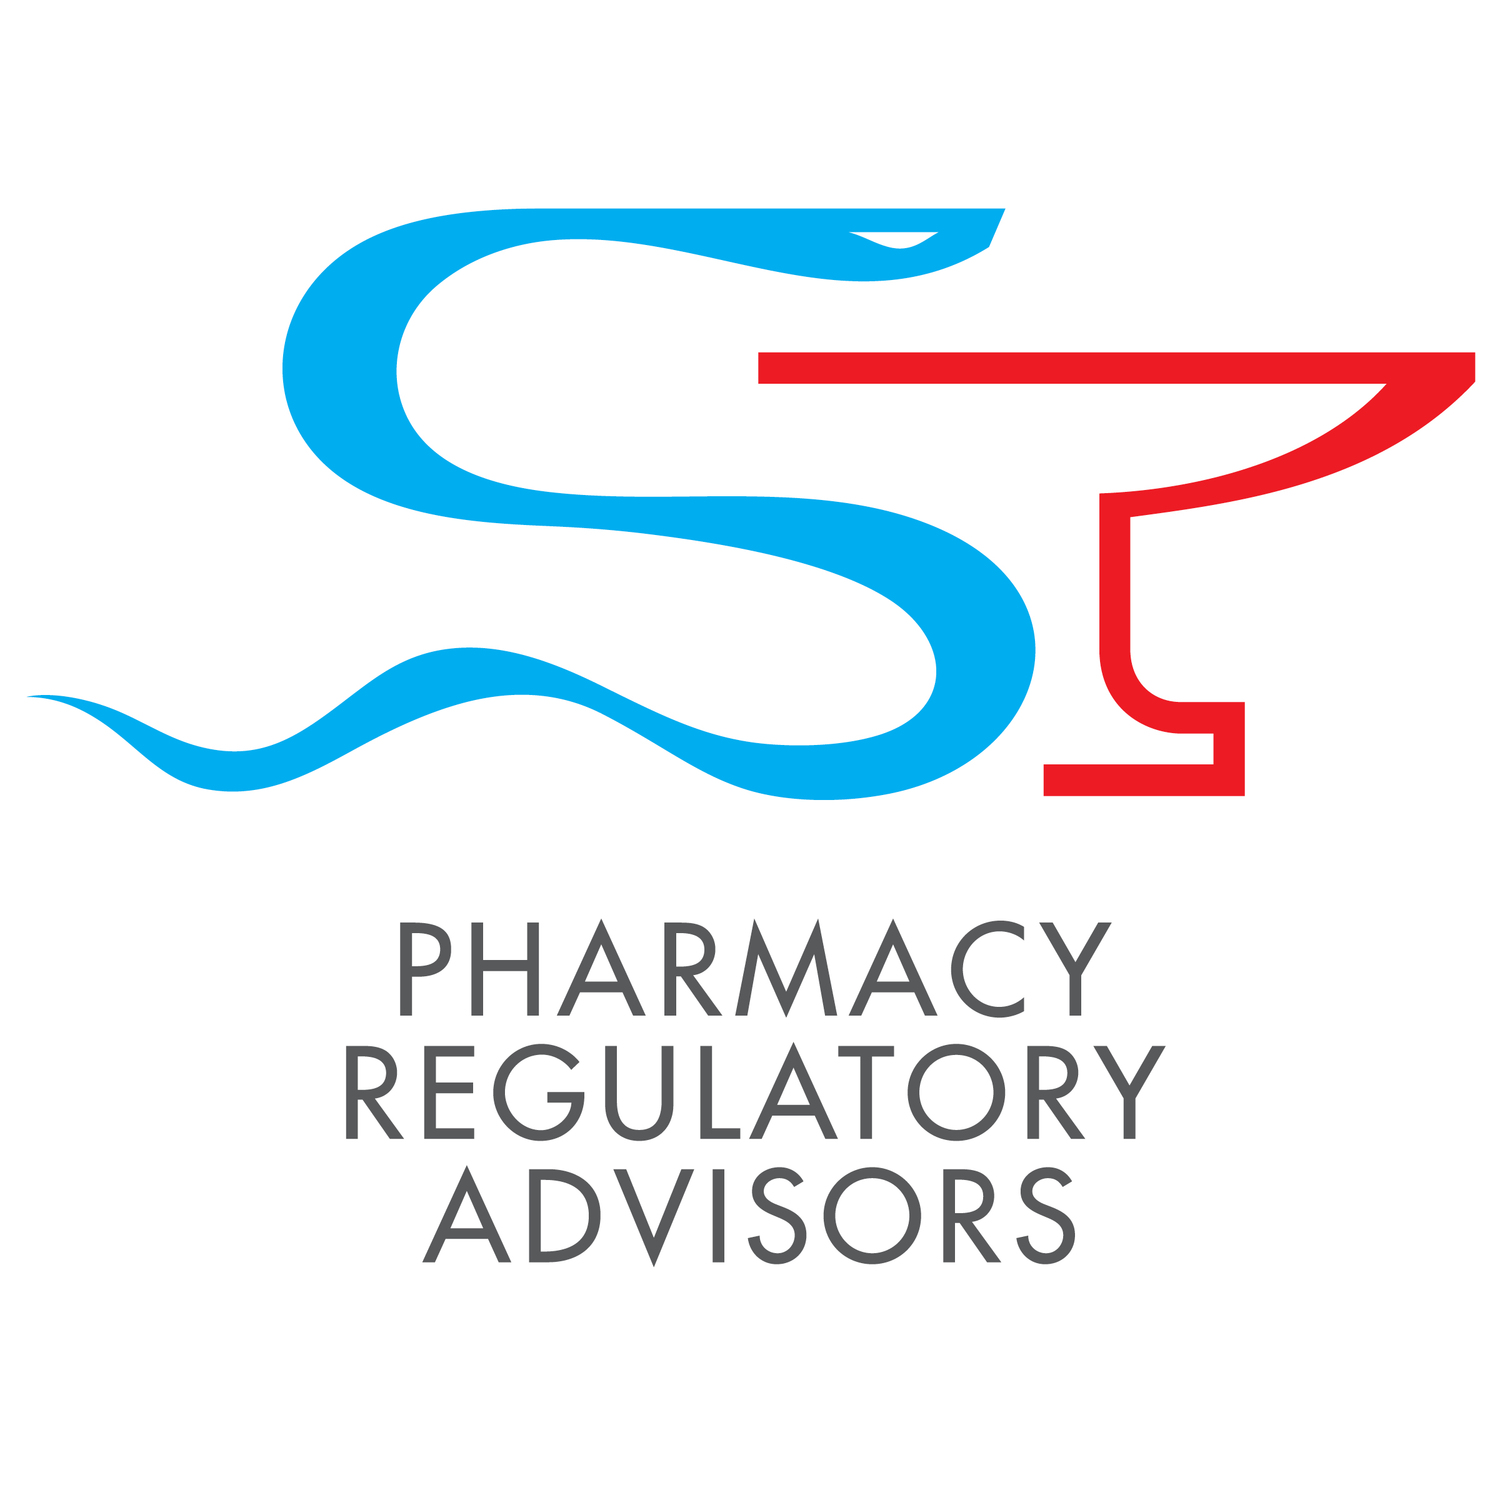 Pharmacy Regulatory Advisors